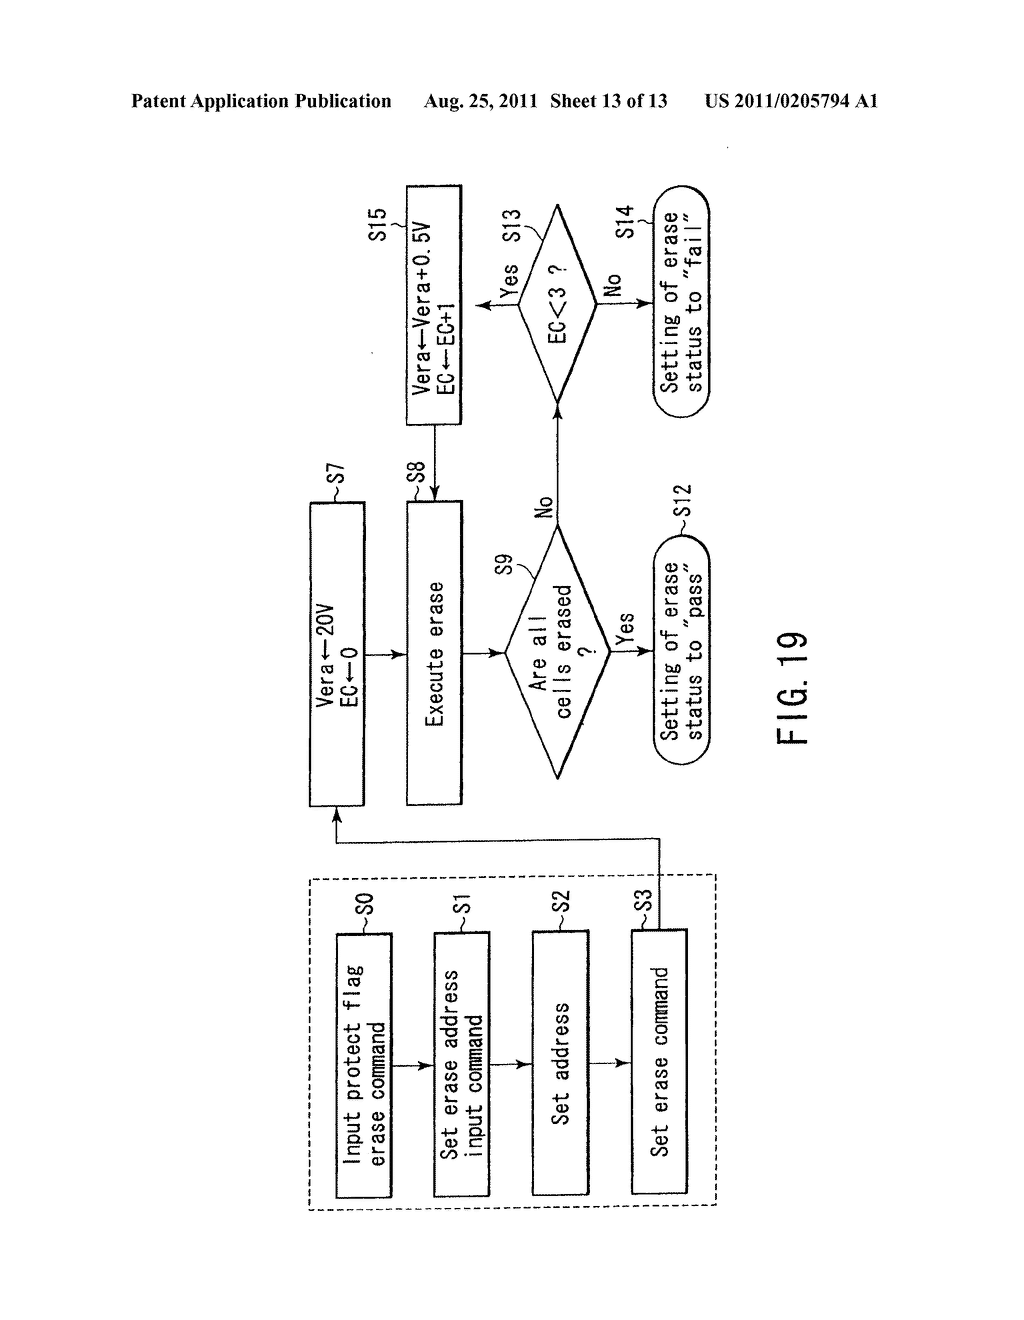 Nonvolatile Semiconductor Memory Device Having Protection Function Of Block Diagram For Each Schematic And Image 14